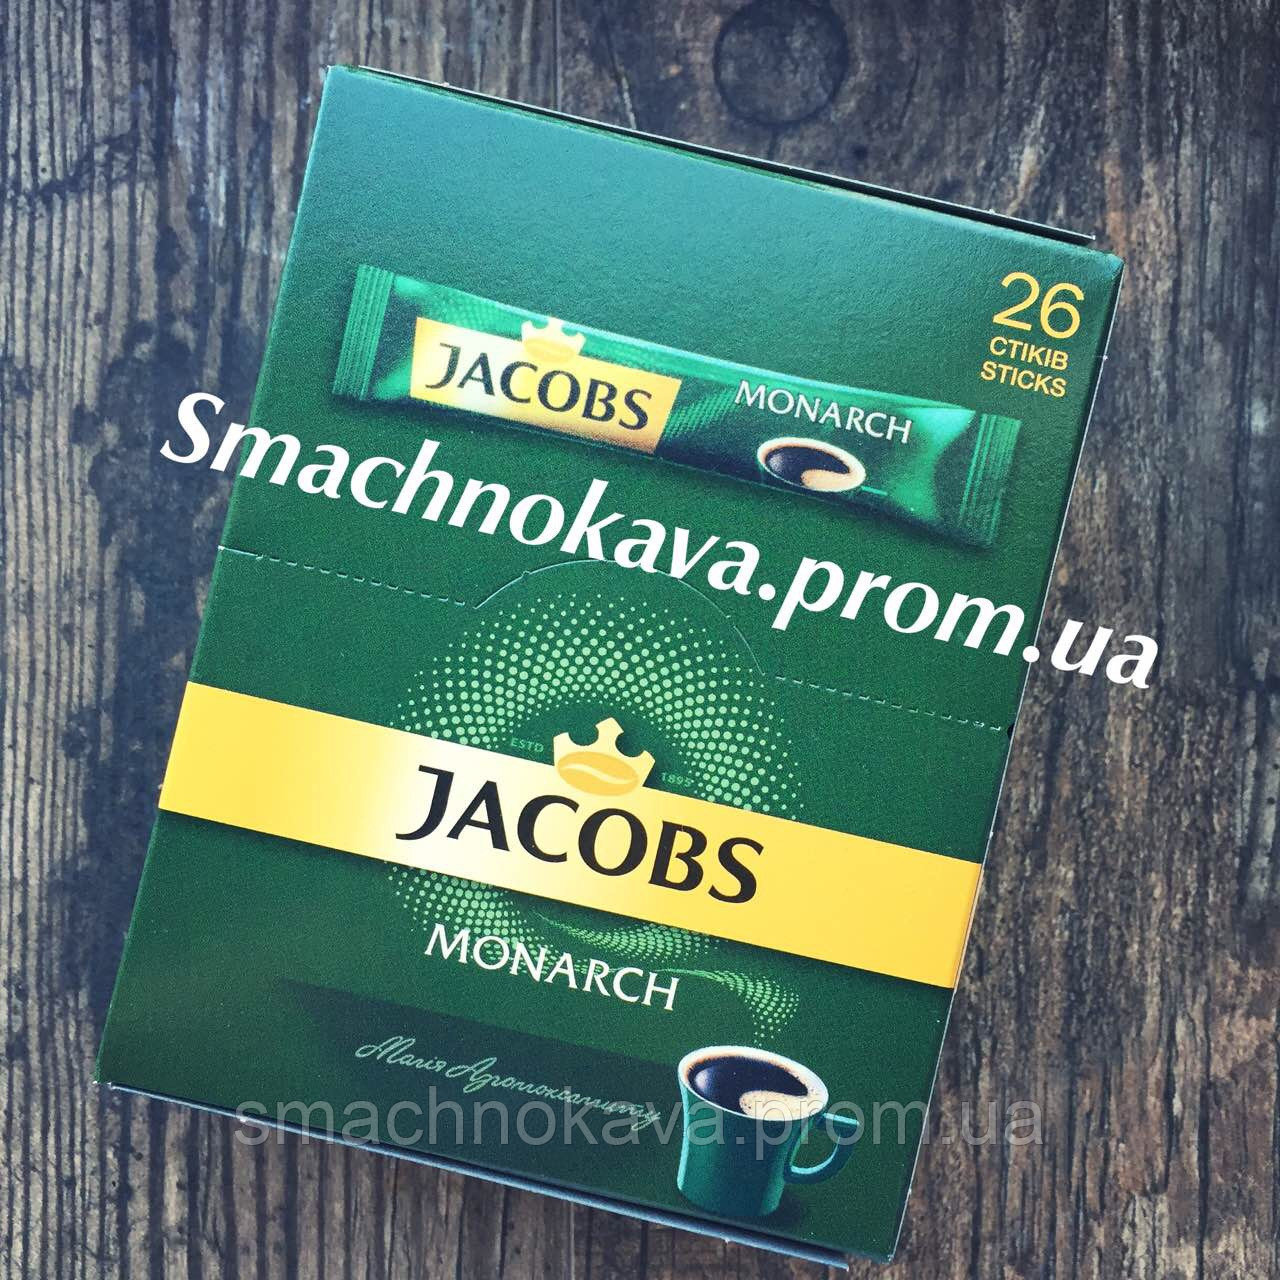 Растворимый кофе Jacobs Monarch в стиках